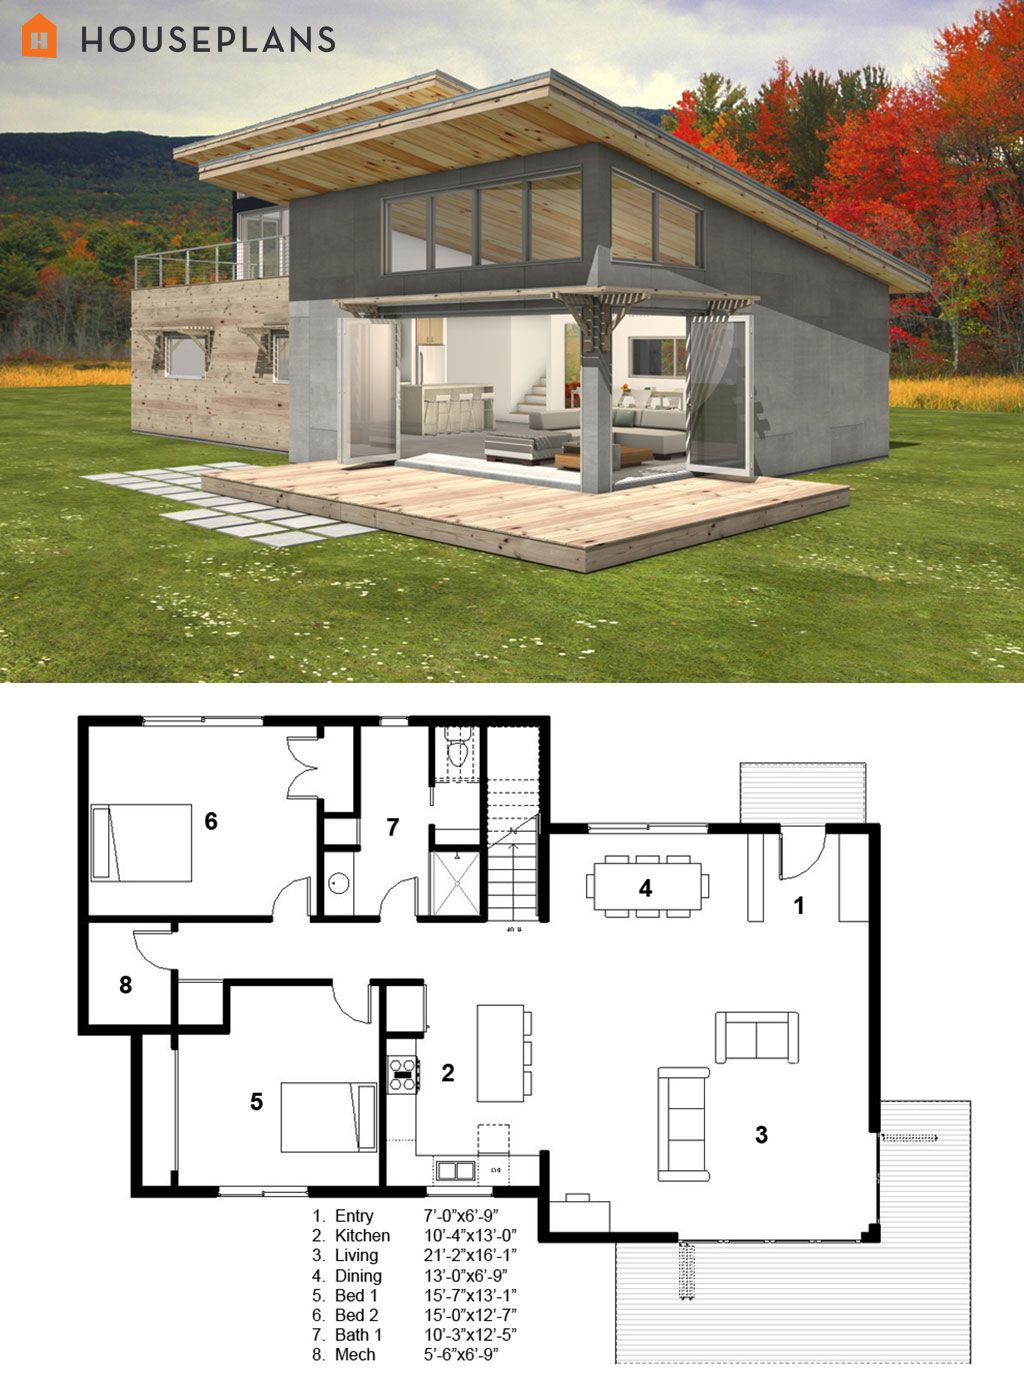 Open Floor Plans for Small Homes Elegant Modern Style House Plan 3 Beds 2 Baths 2115 Sq Ft Plan